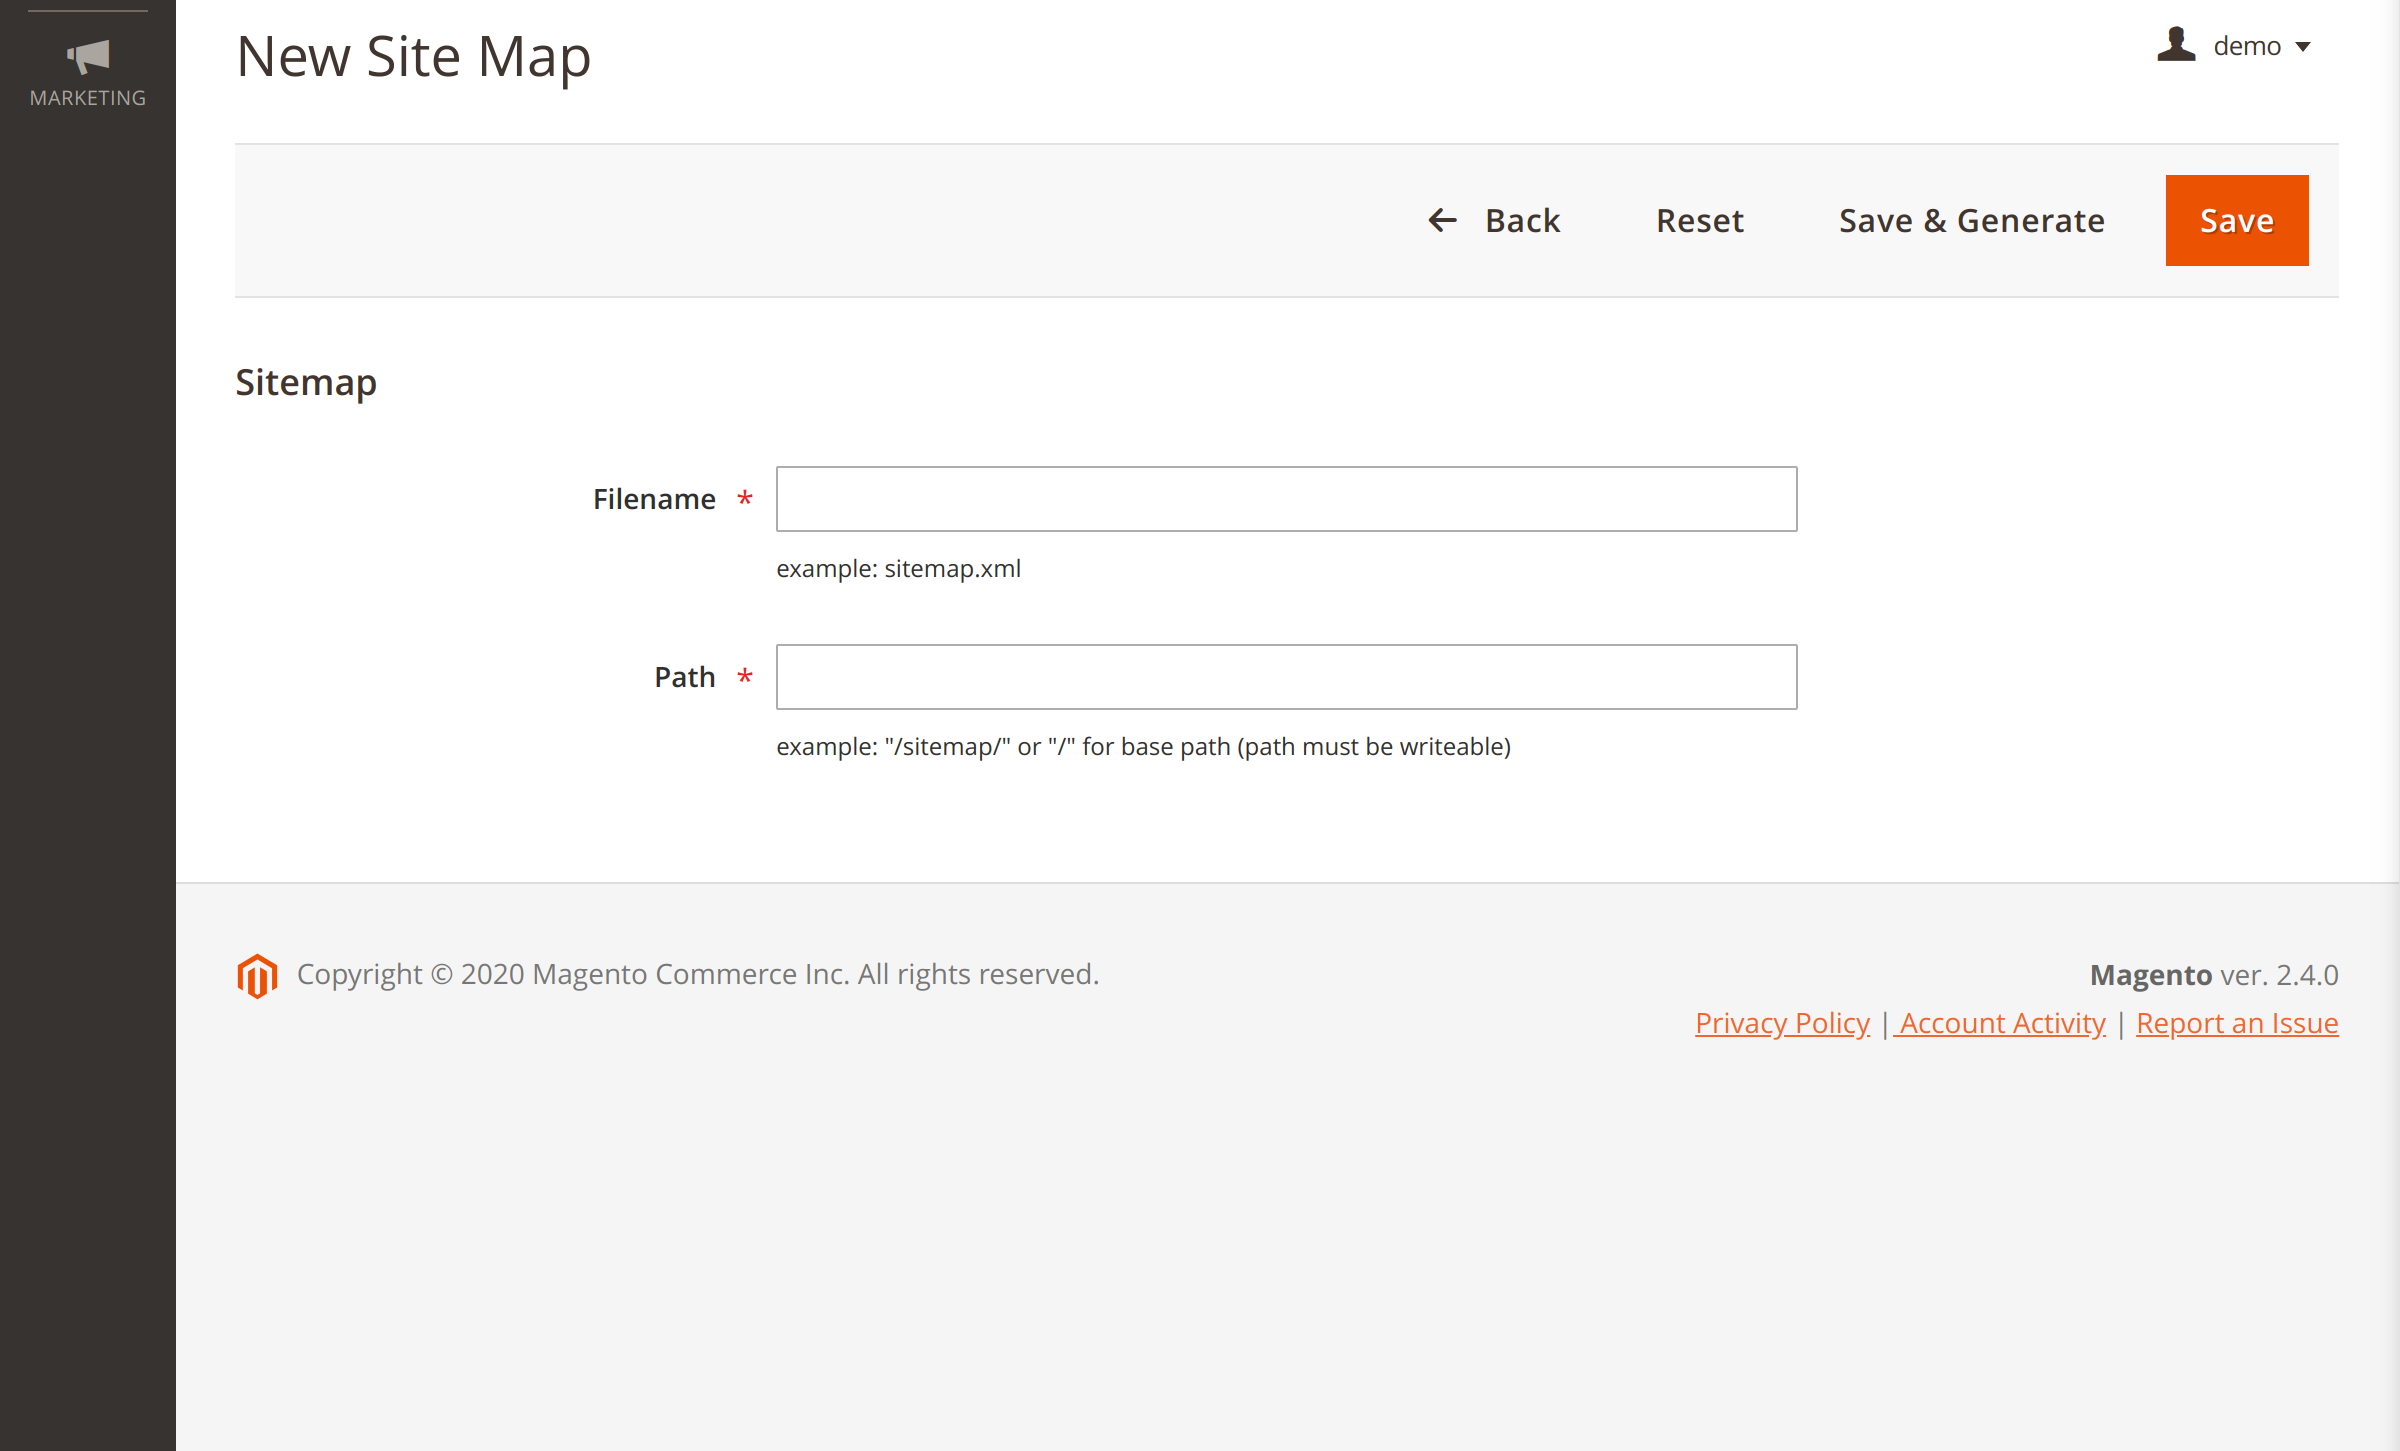 Adding a new sitemap in Magento Google Sitemap extension